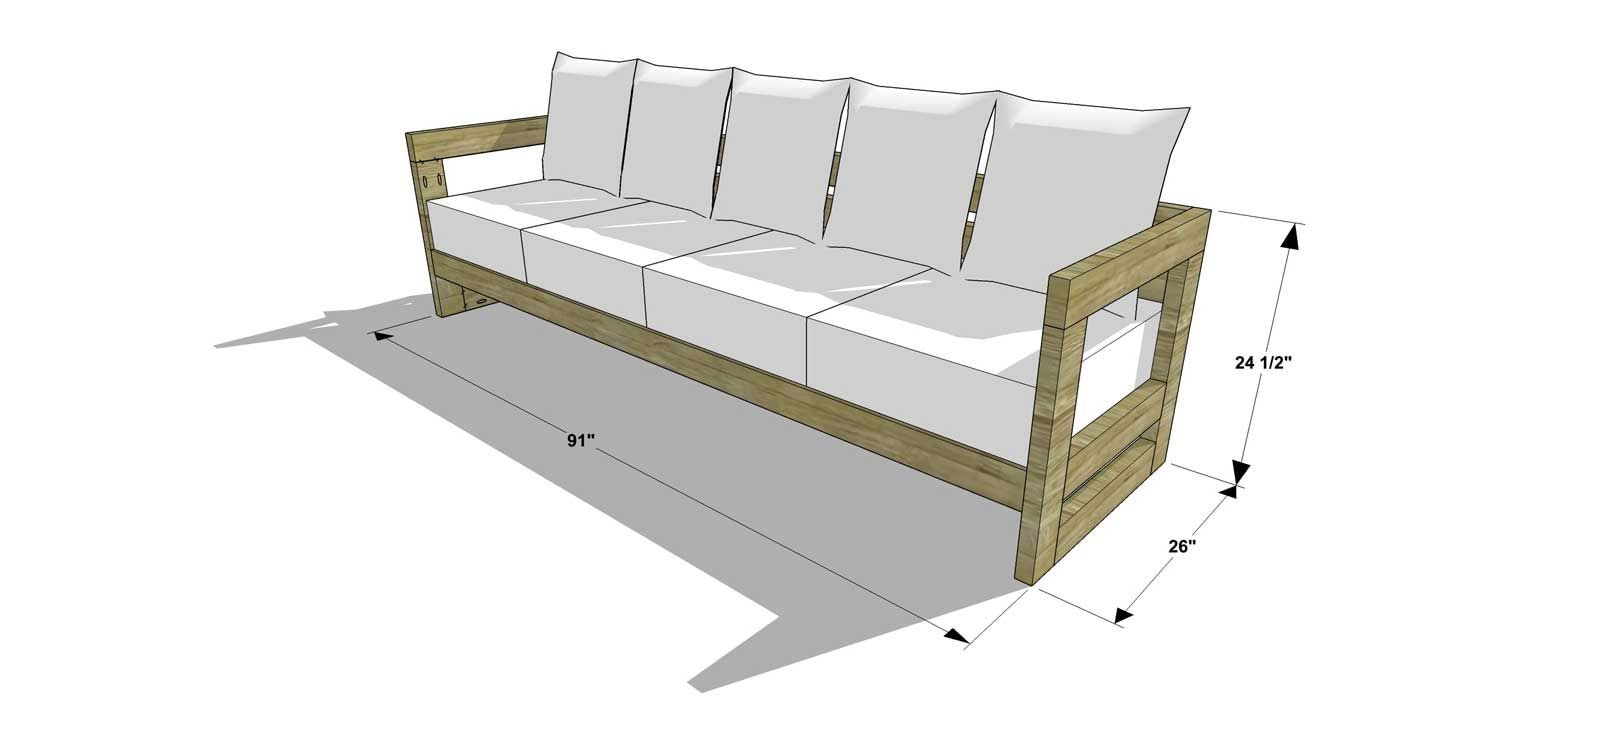 The design confidential diy furniture plans how to build for Outdoor sectional sofa dimensions